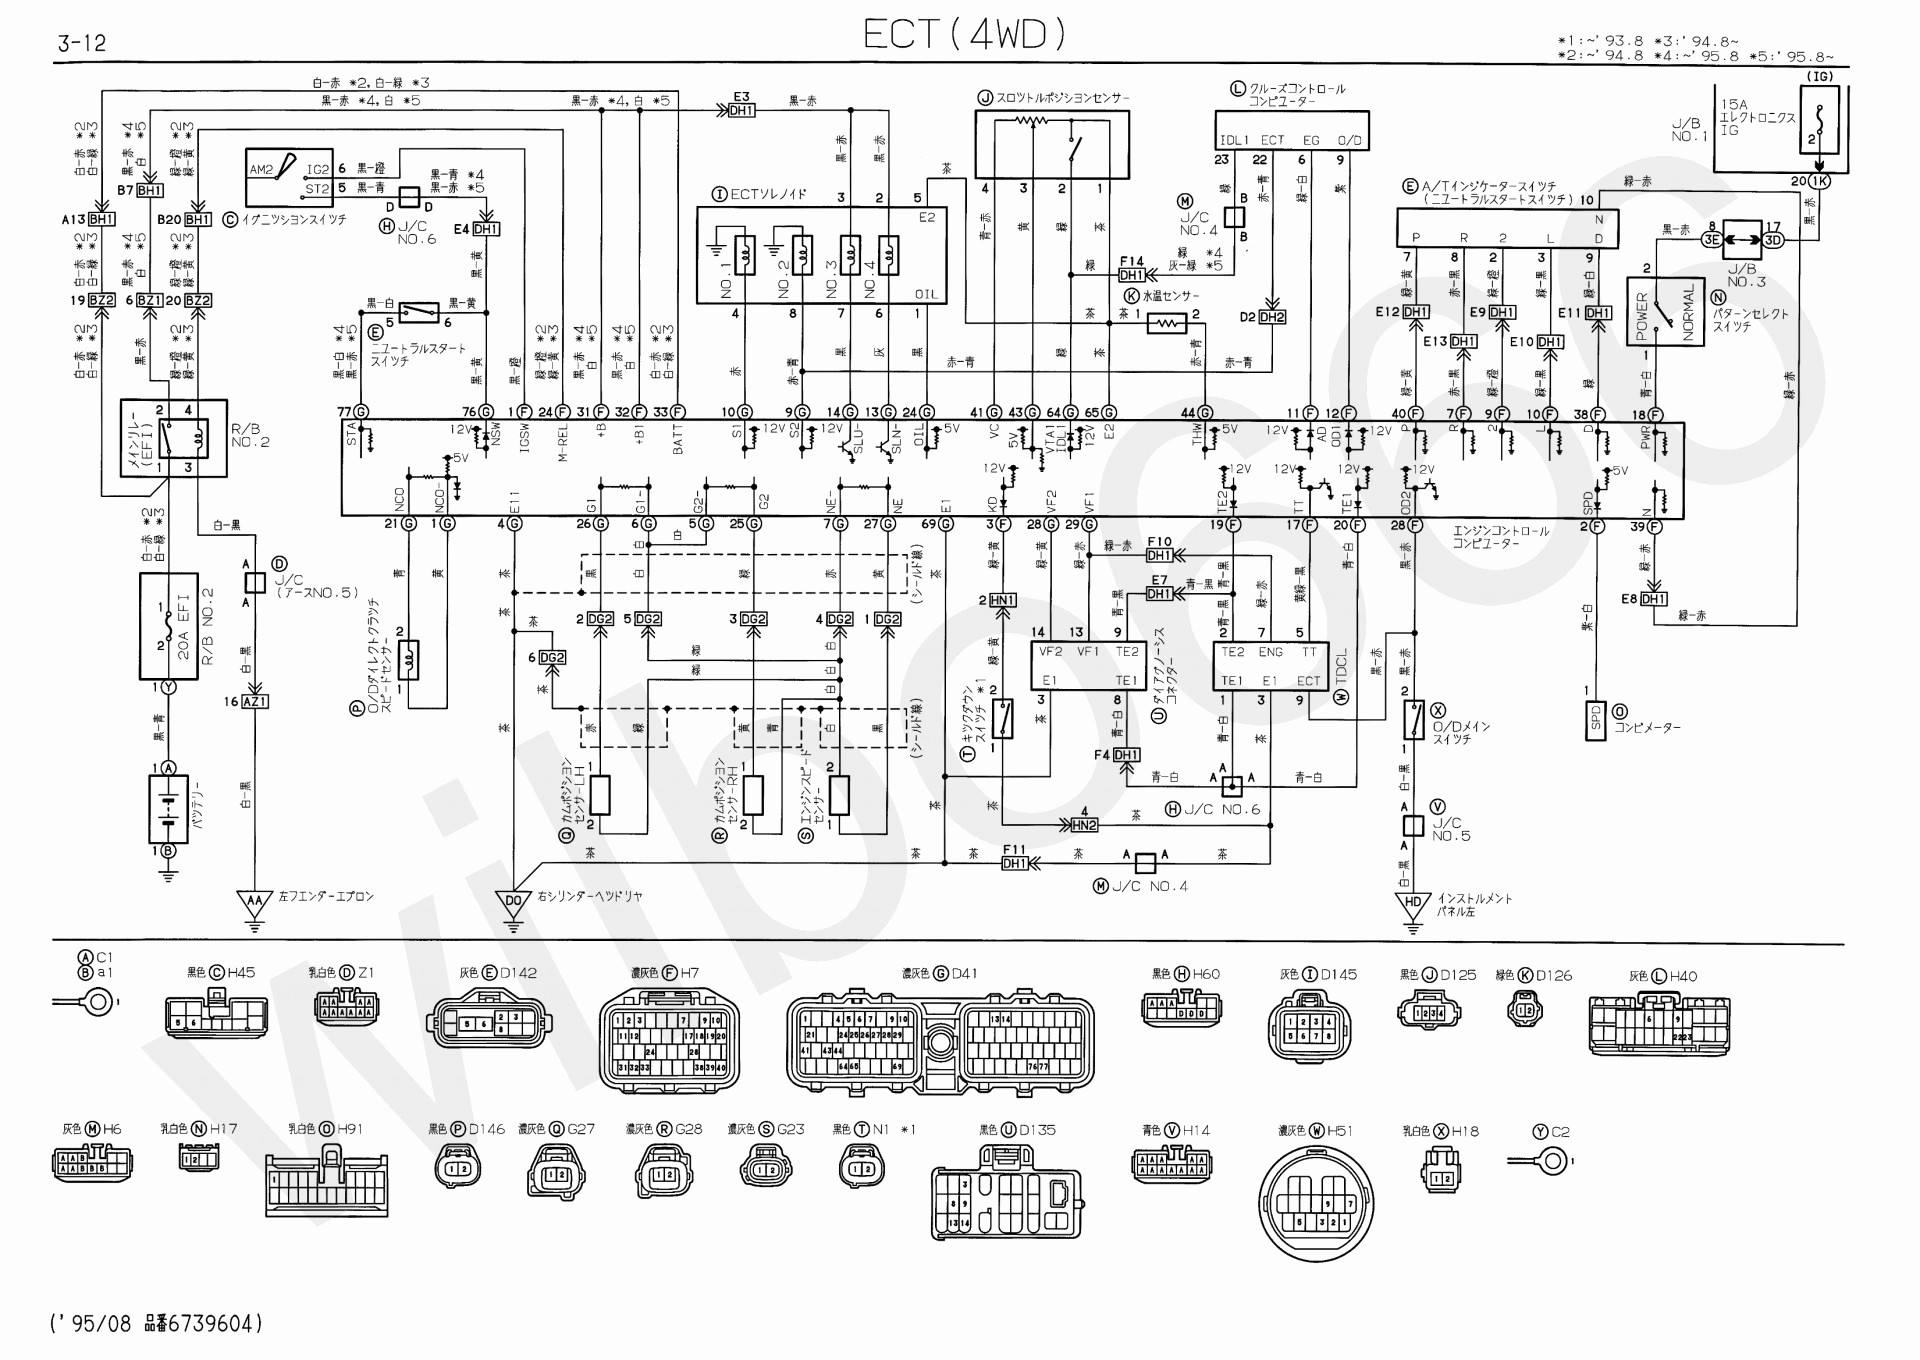 2010 mazda 3 engine diagram mazda 3 wiring harness diagram